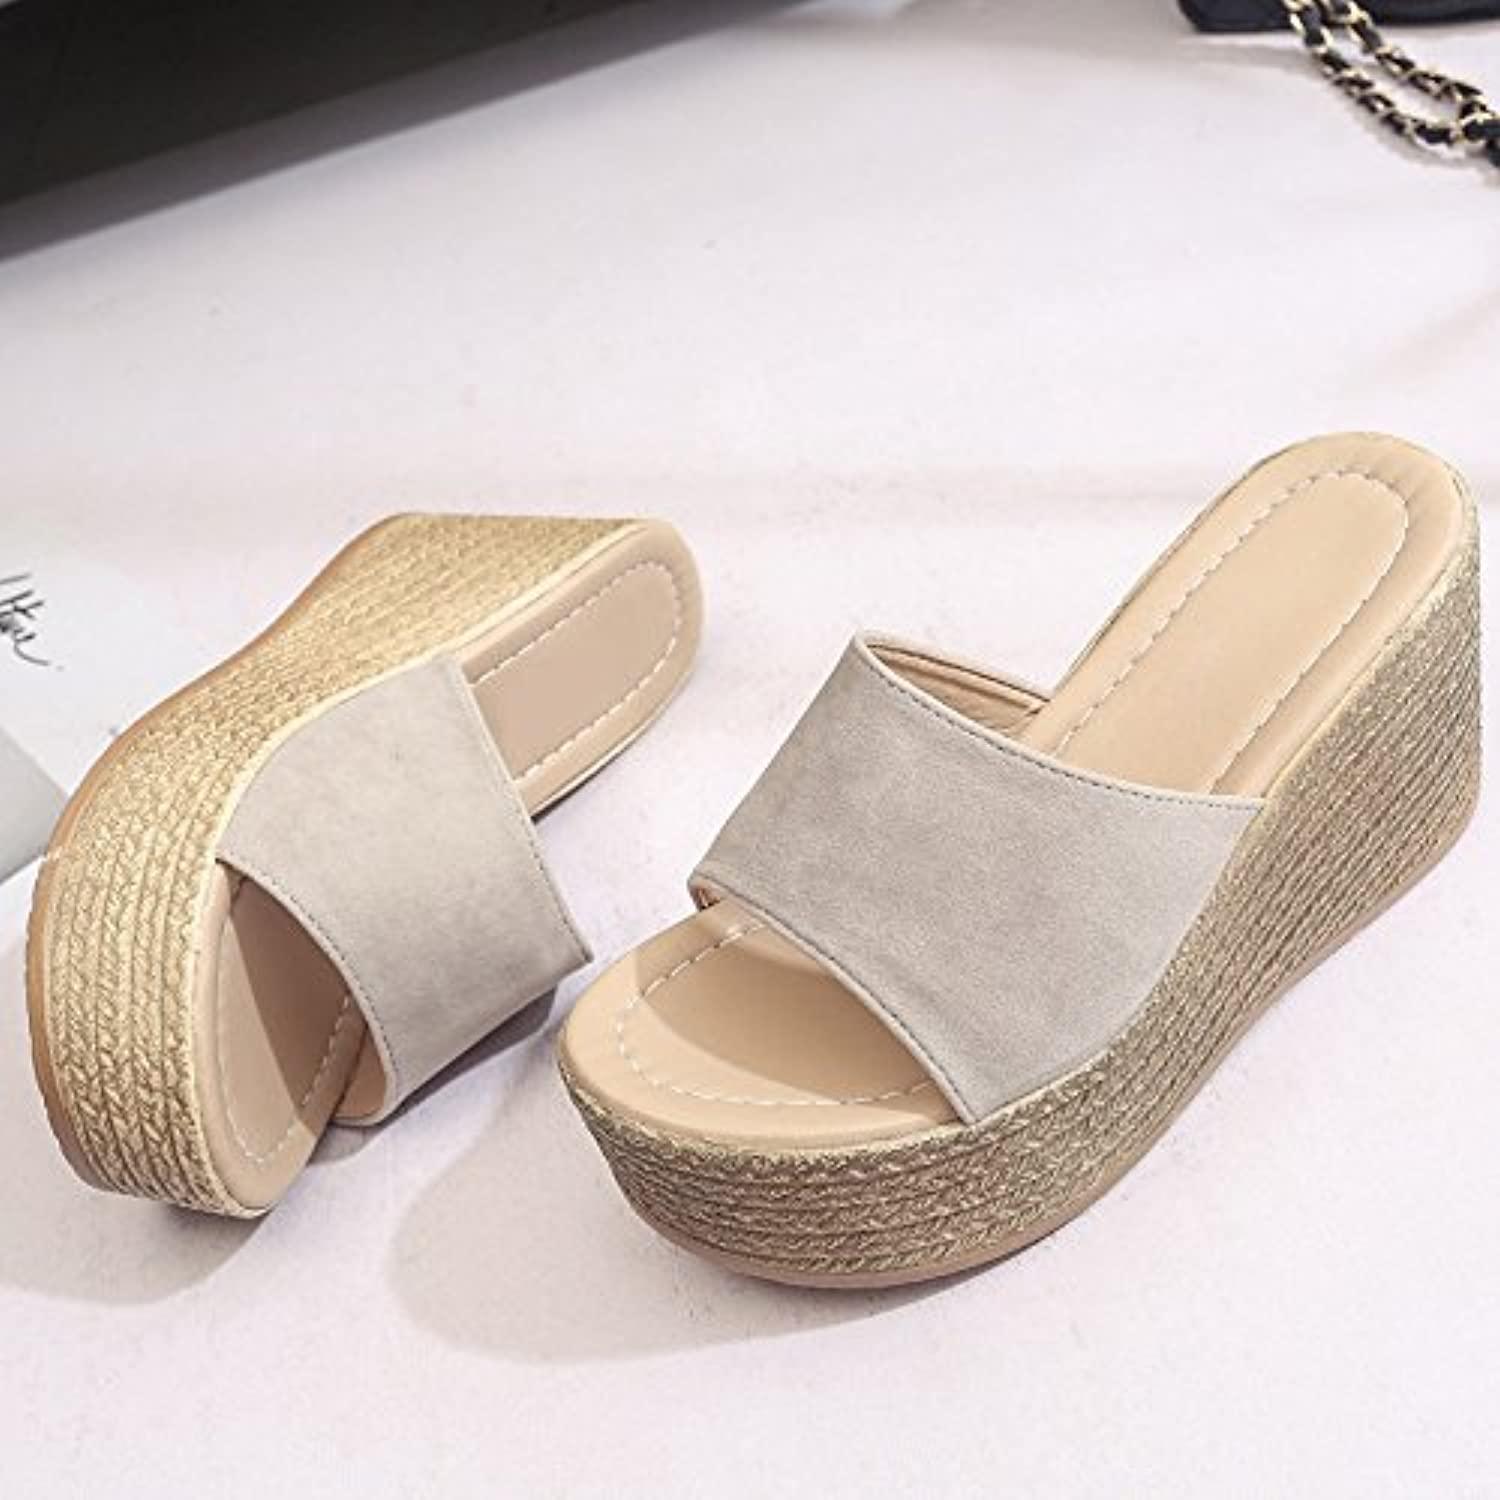 fankou Slippers Summer Female Fashion, Wearing Thick with Slope, Cold and High-Heeled,39, Light Yellow